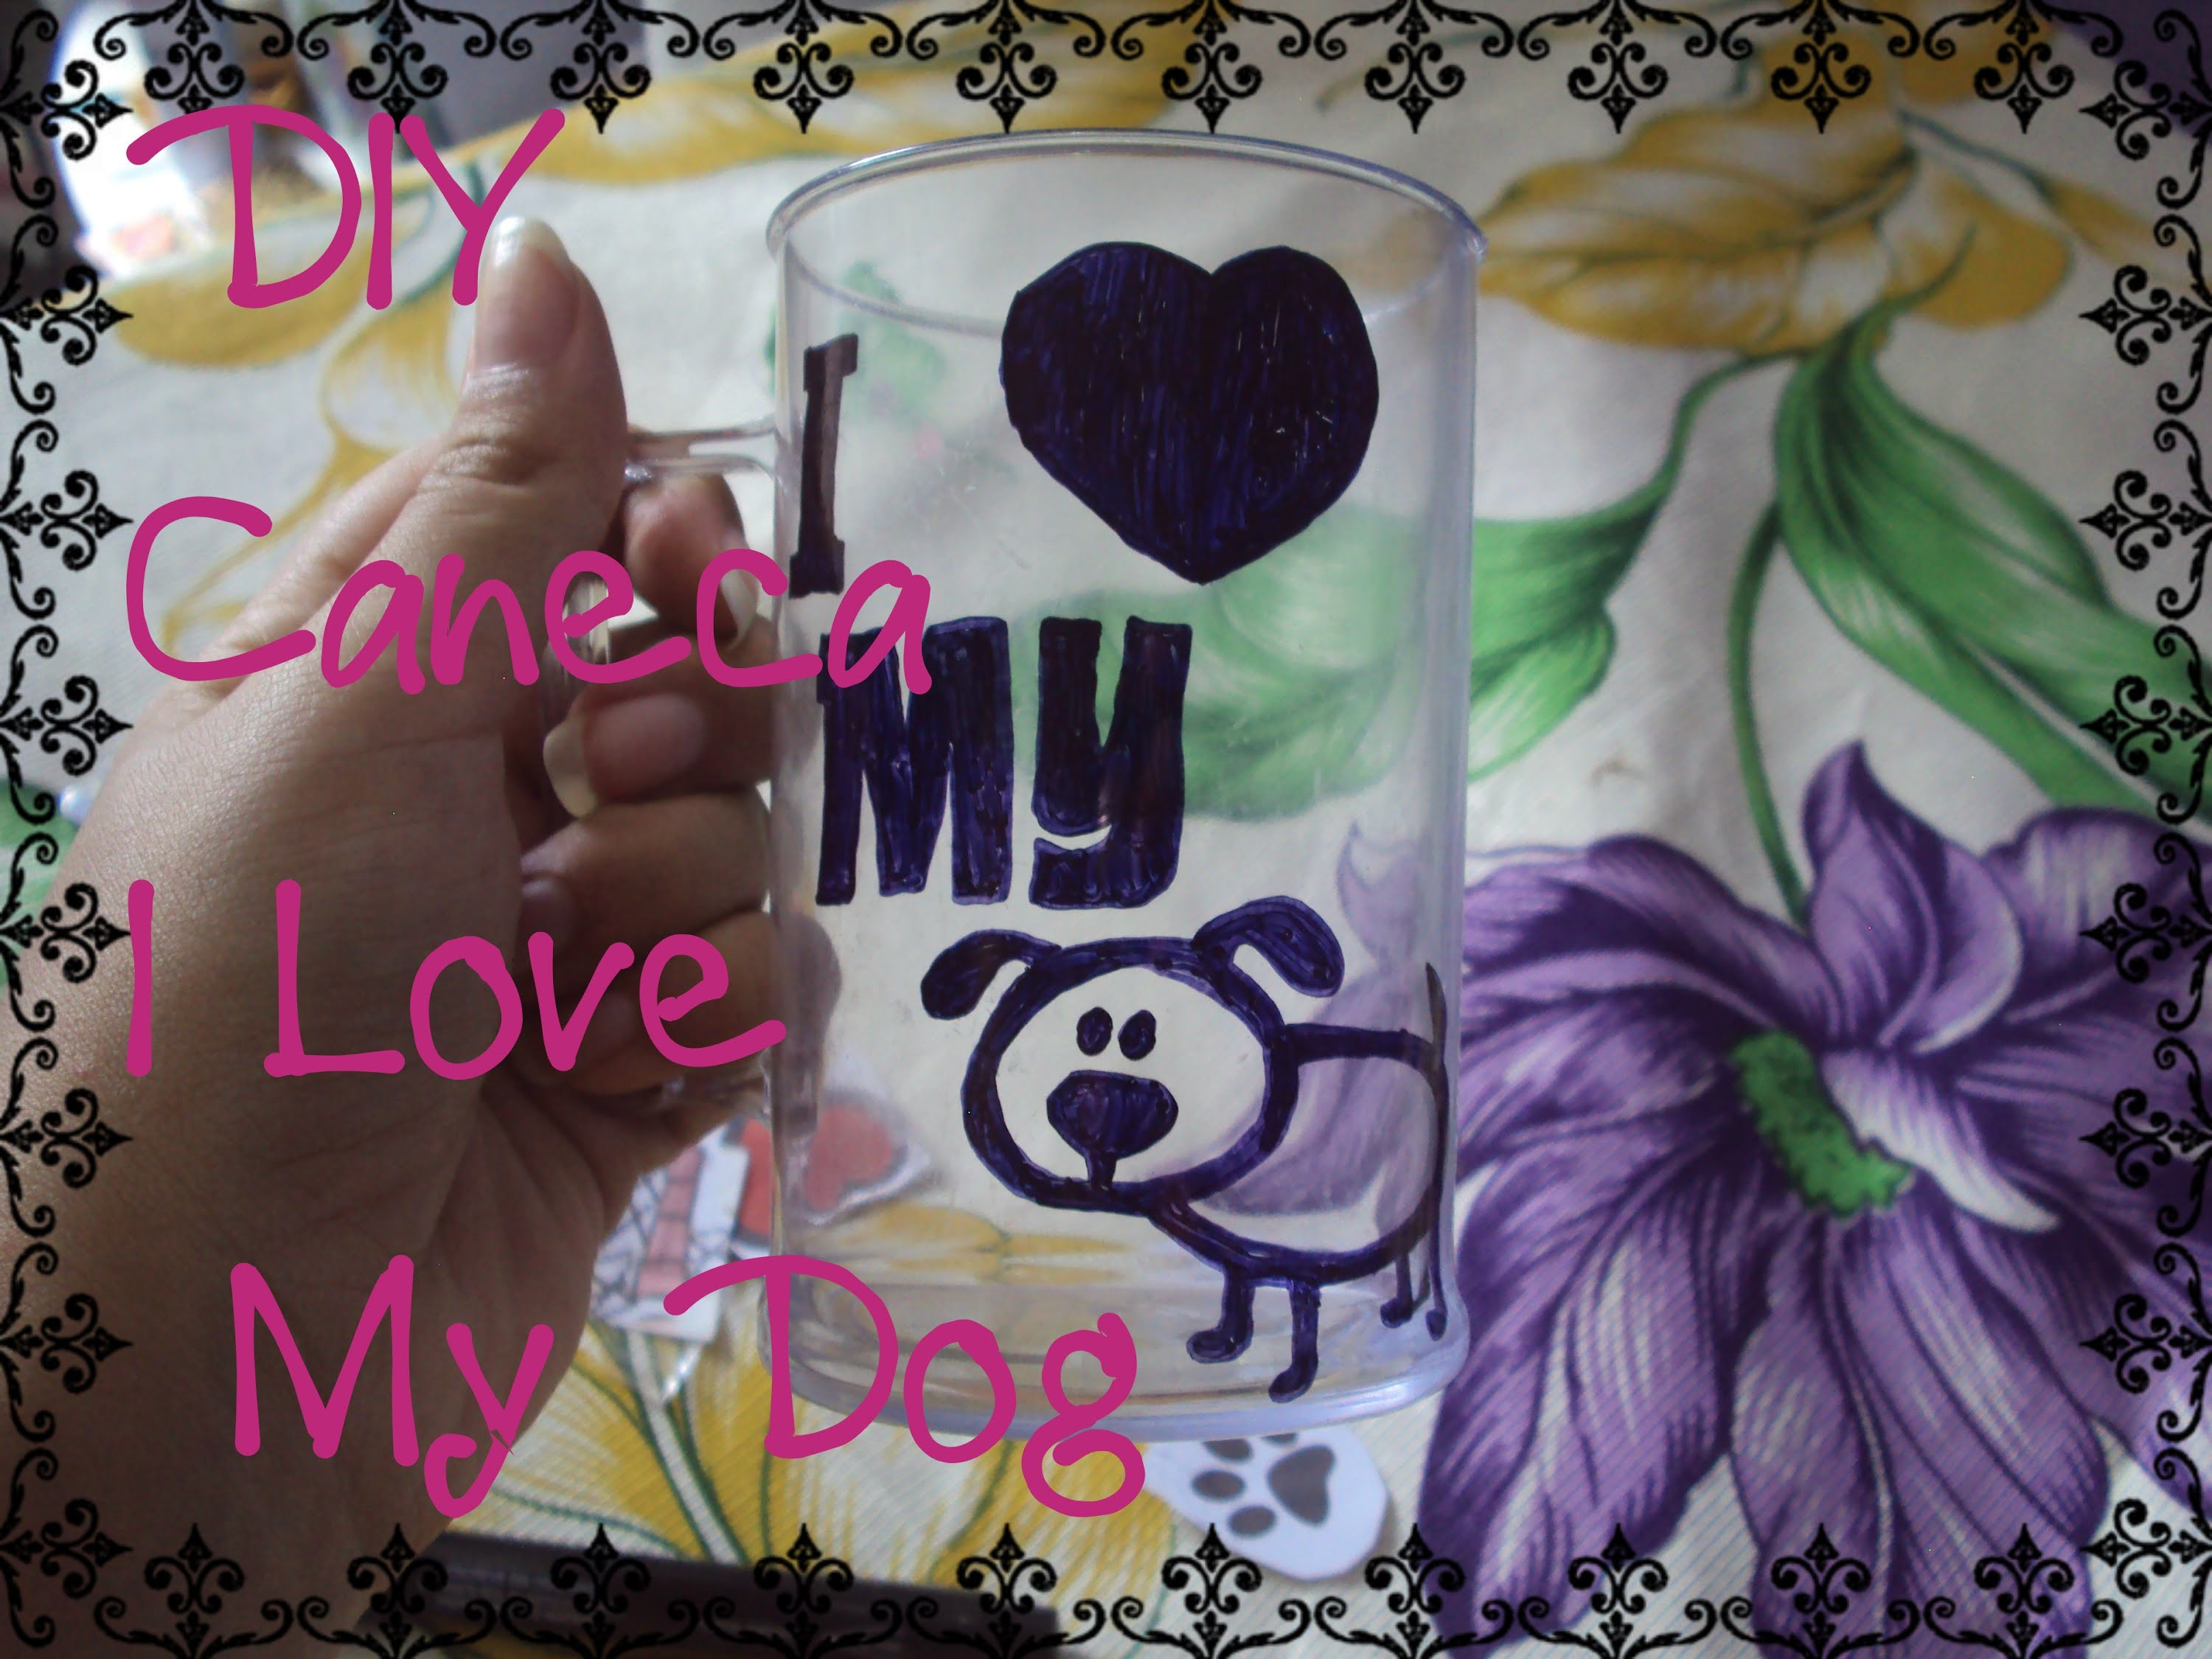 ✂ Diy: Caneca I Love My Dog